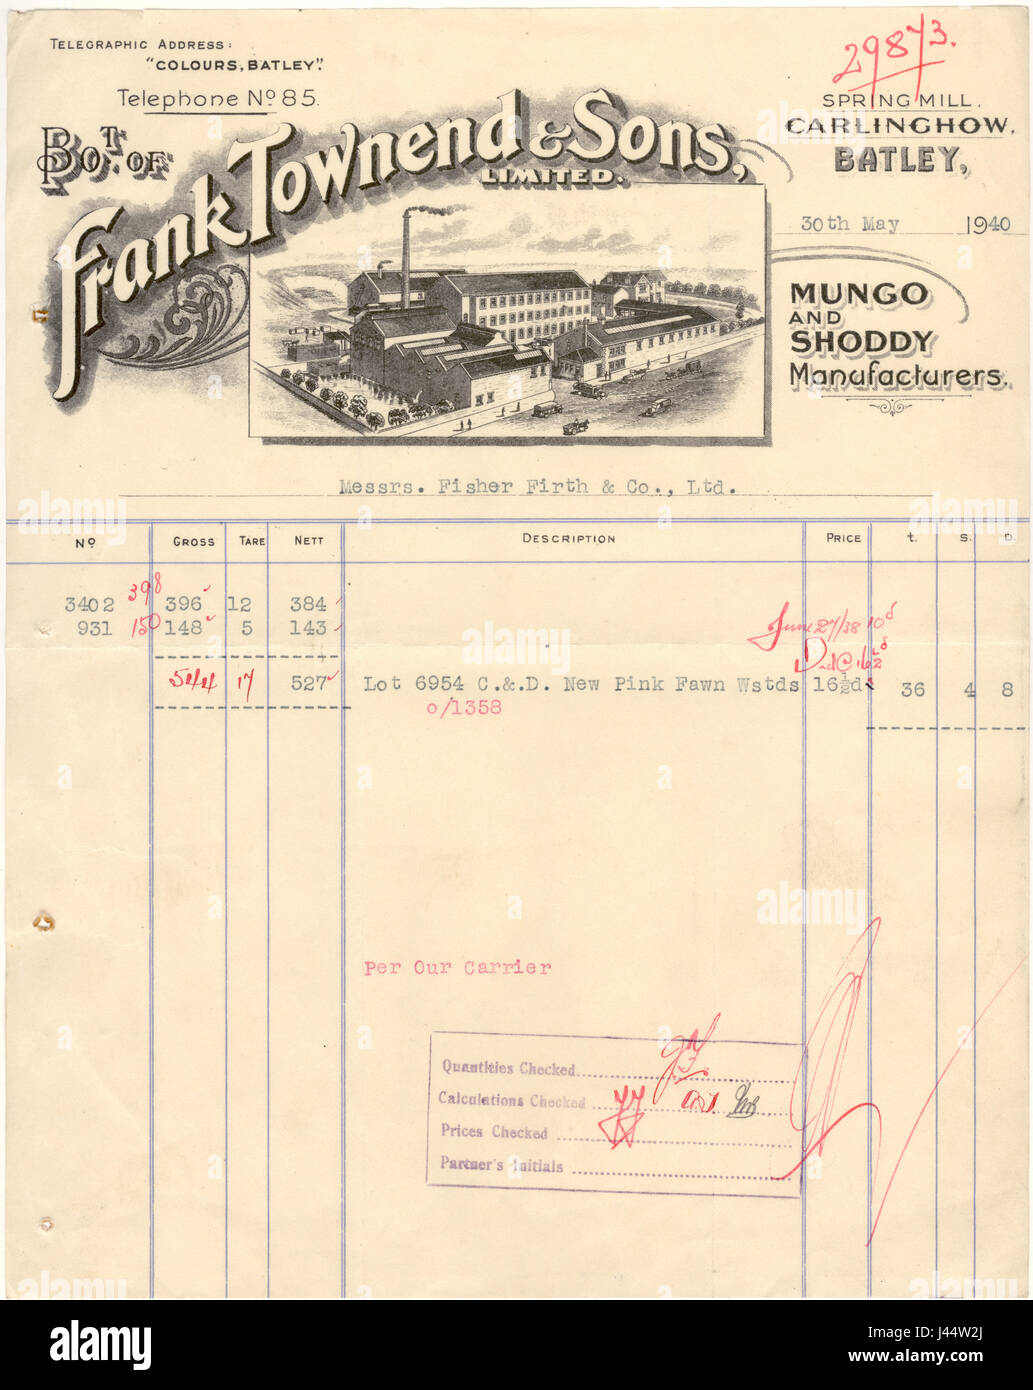 Invoice from Mungo and Shoddy manufacturer Frank Townend & Sons,  Batley, Yorkshire,  May 1940 - Stock Image